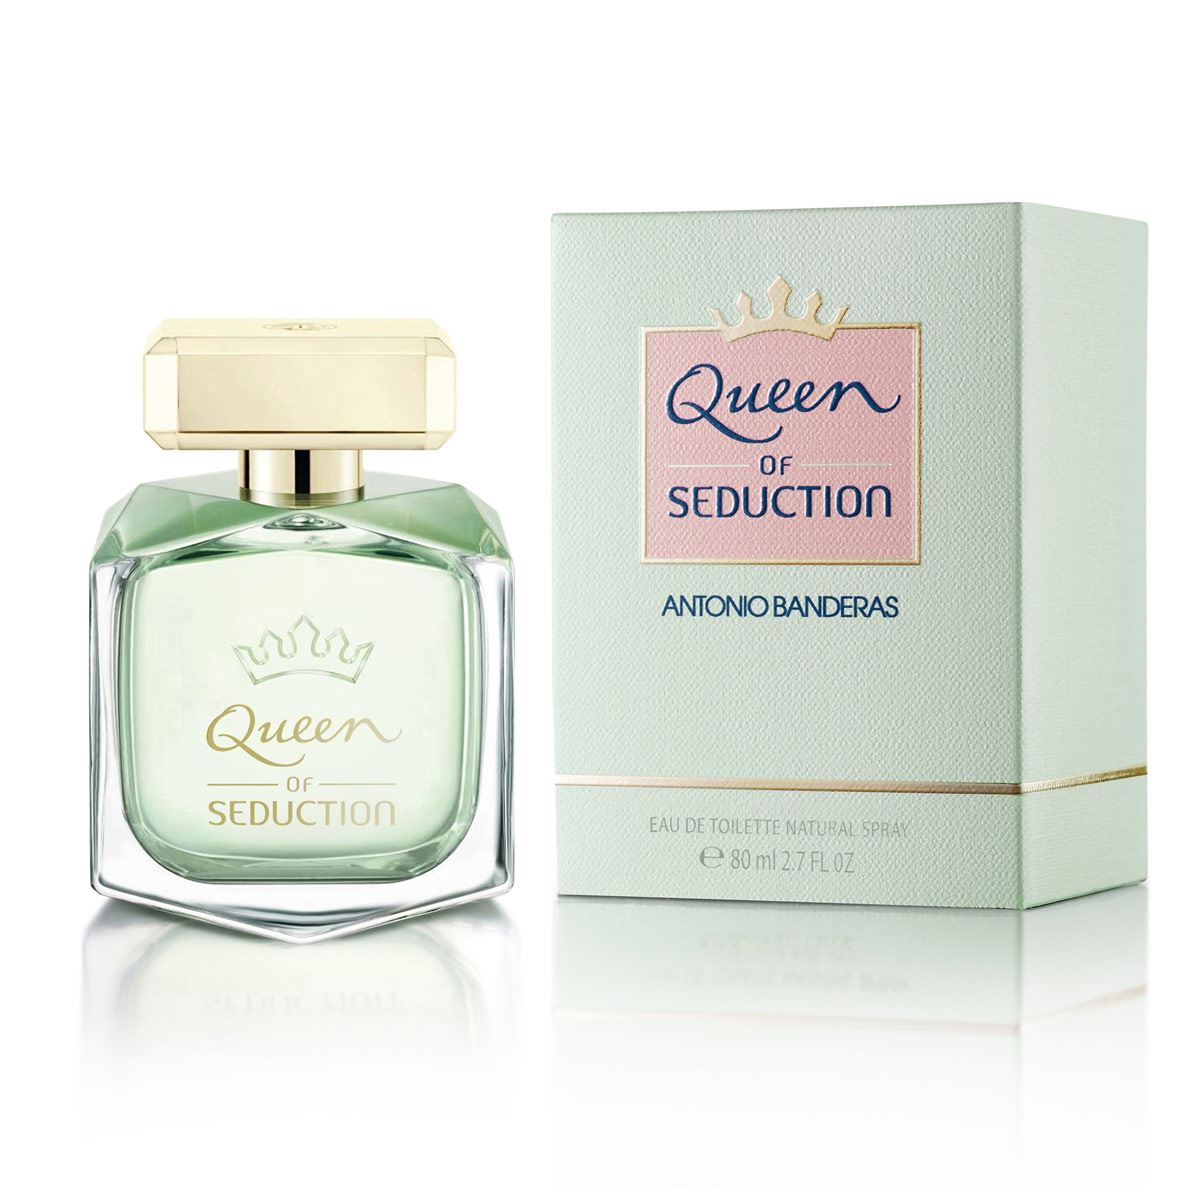 Antonio banderas queen edt 80ml vp  - Sanborns